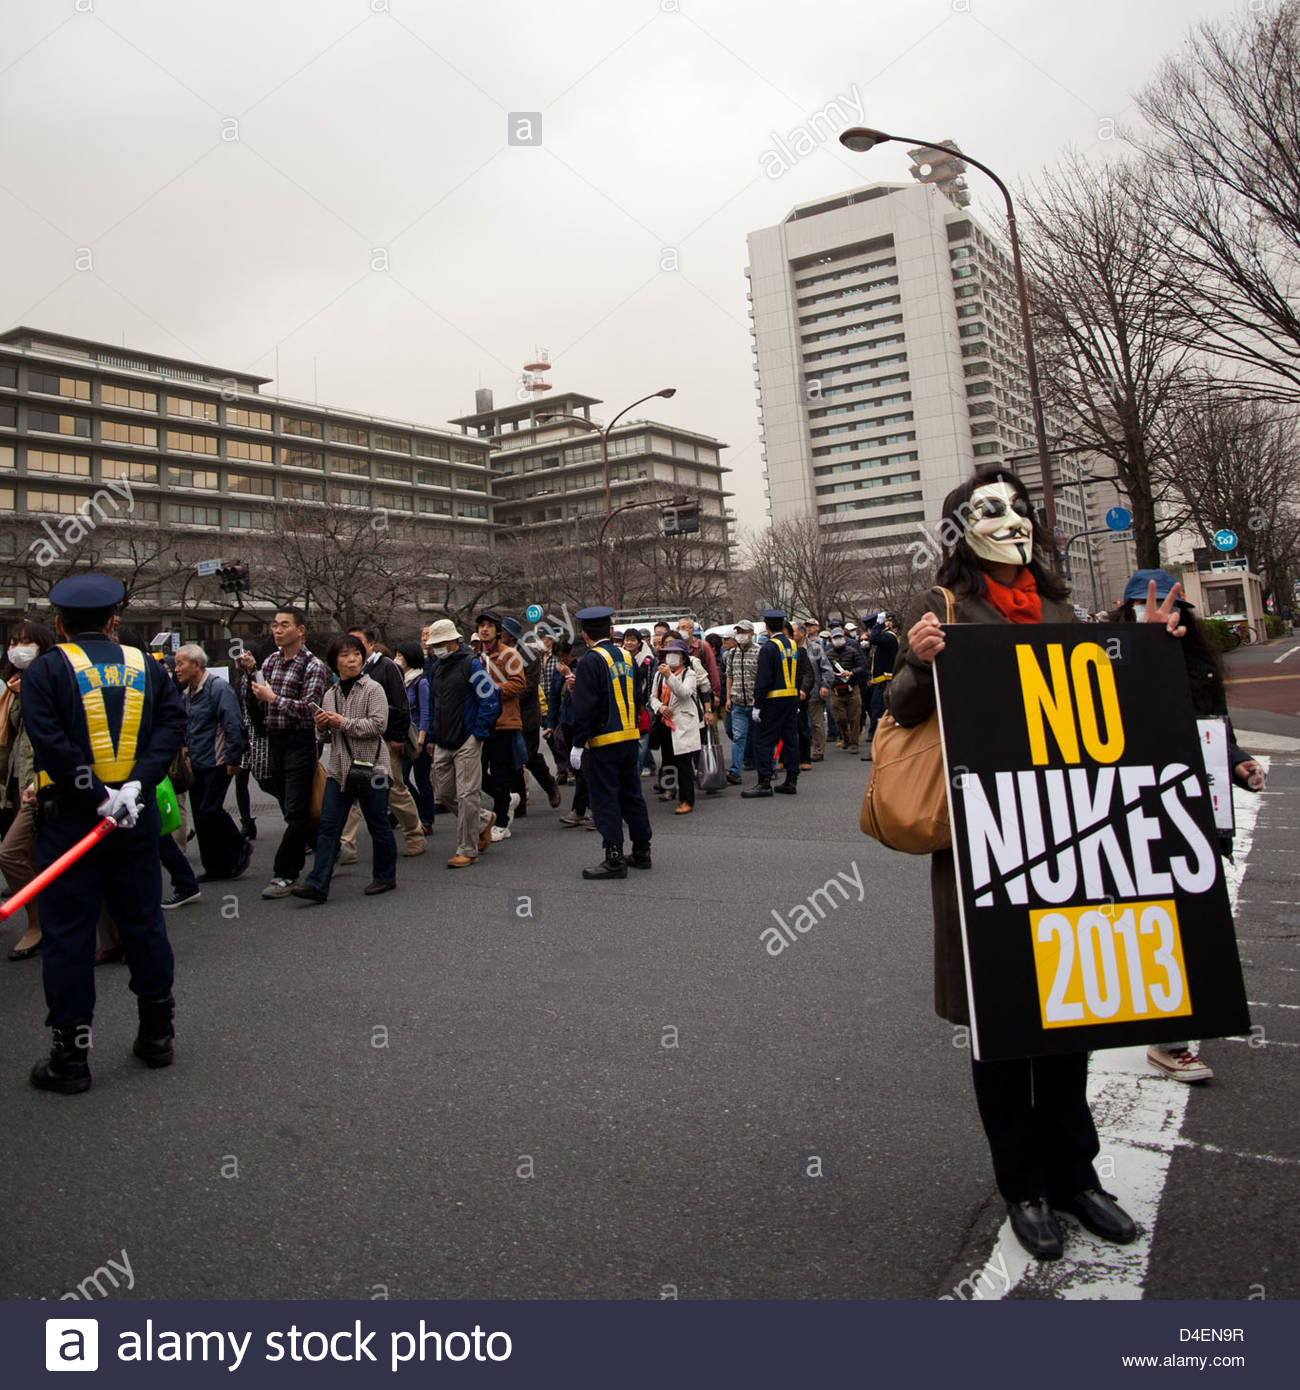 Tens of thousands of protesters march on the Japanese parliament to call for an end to nuclear power in Japan.Stock Photo